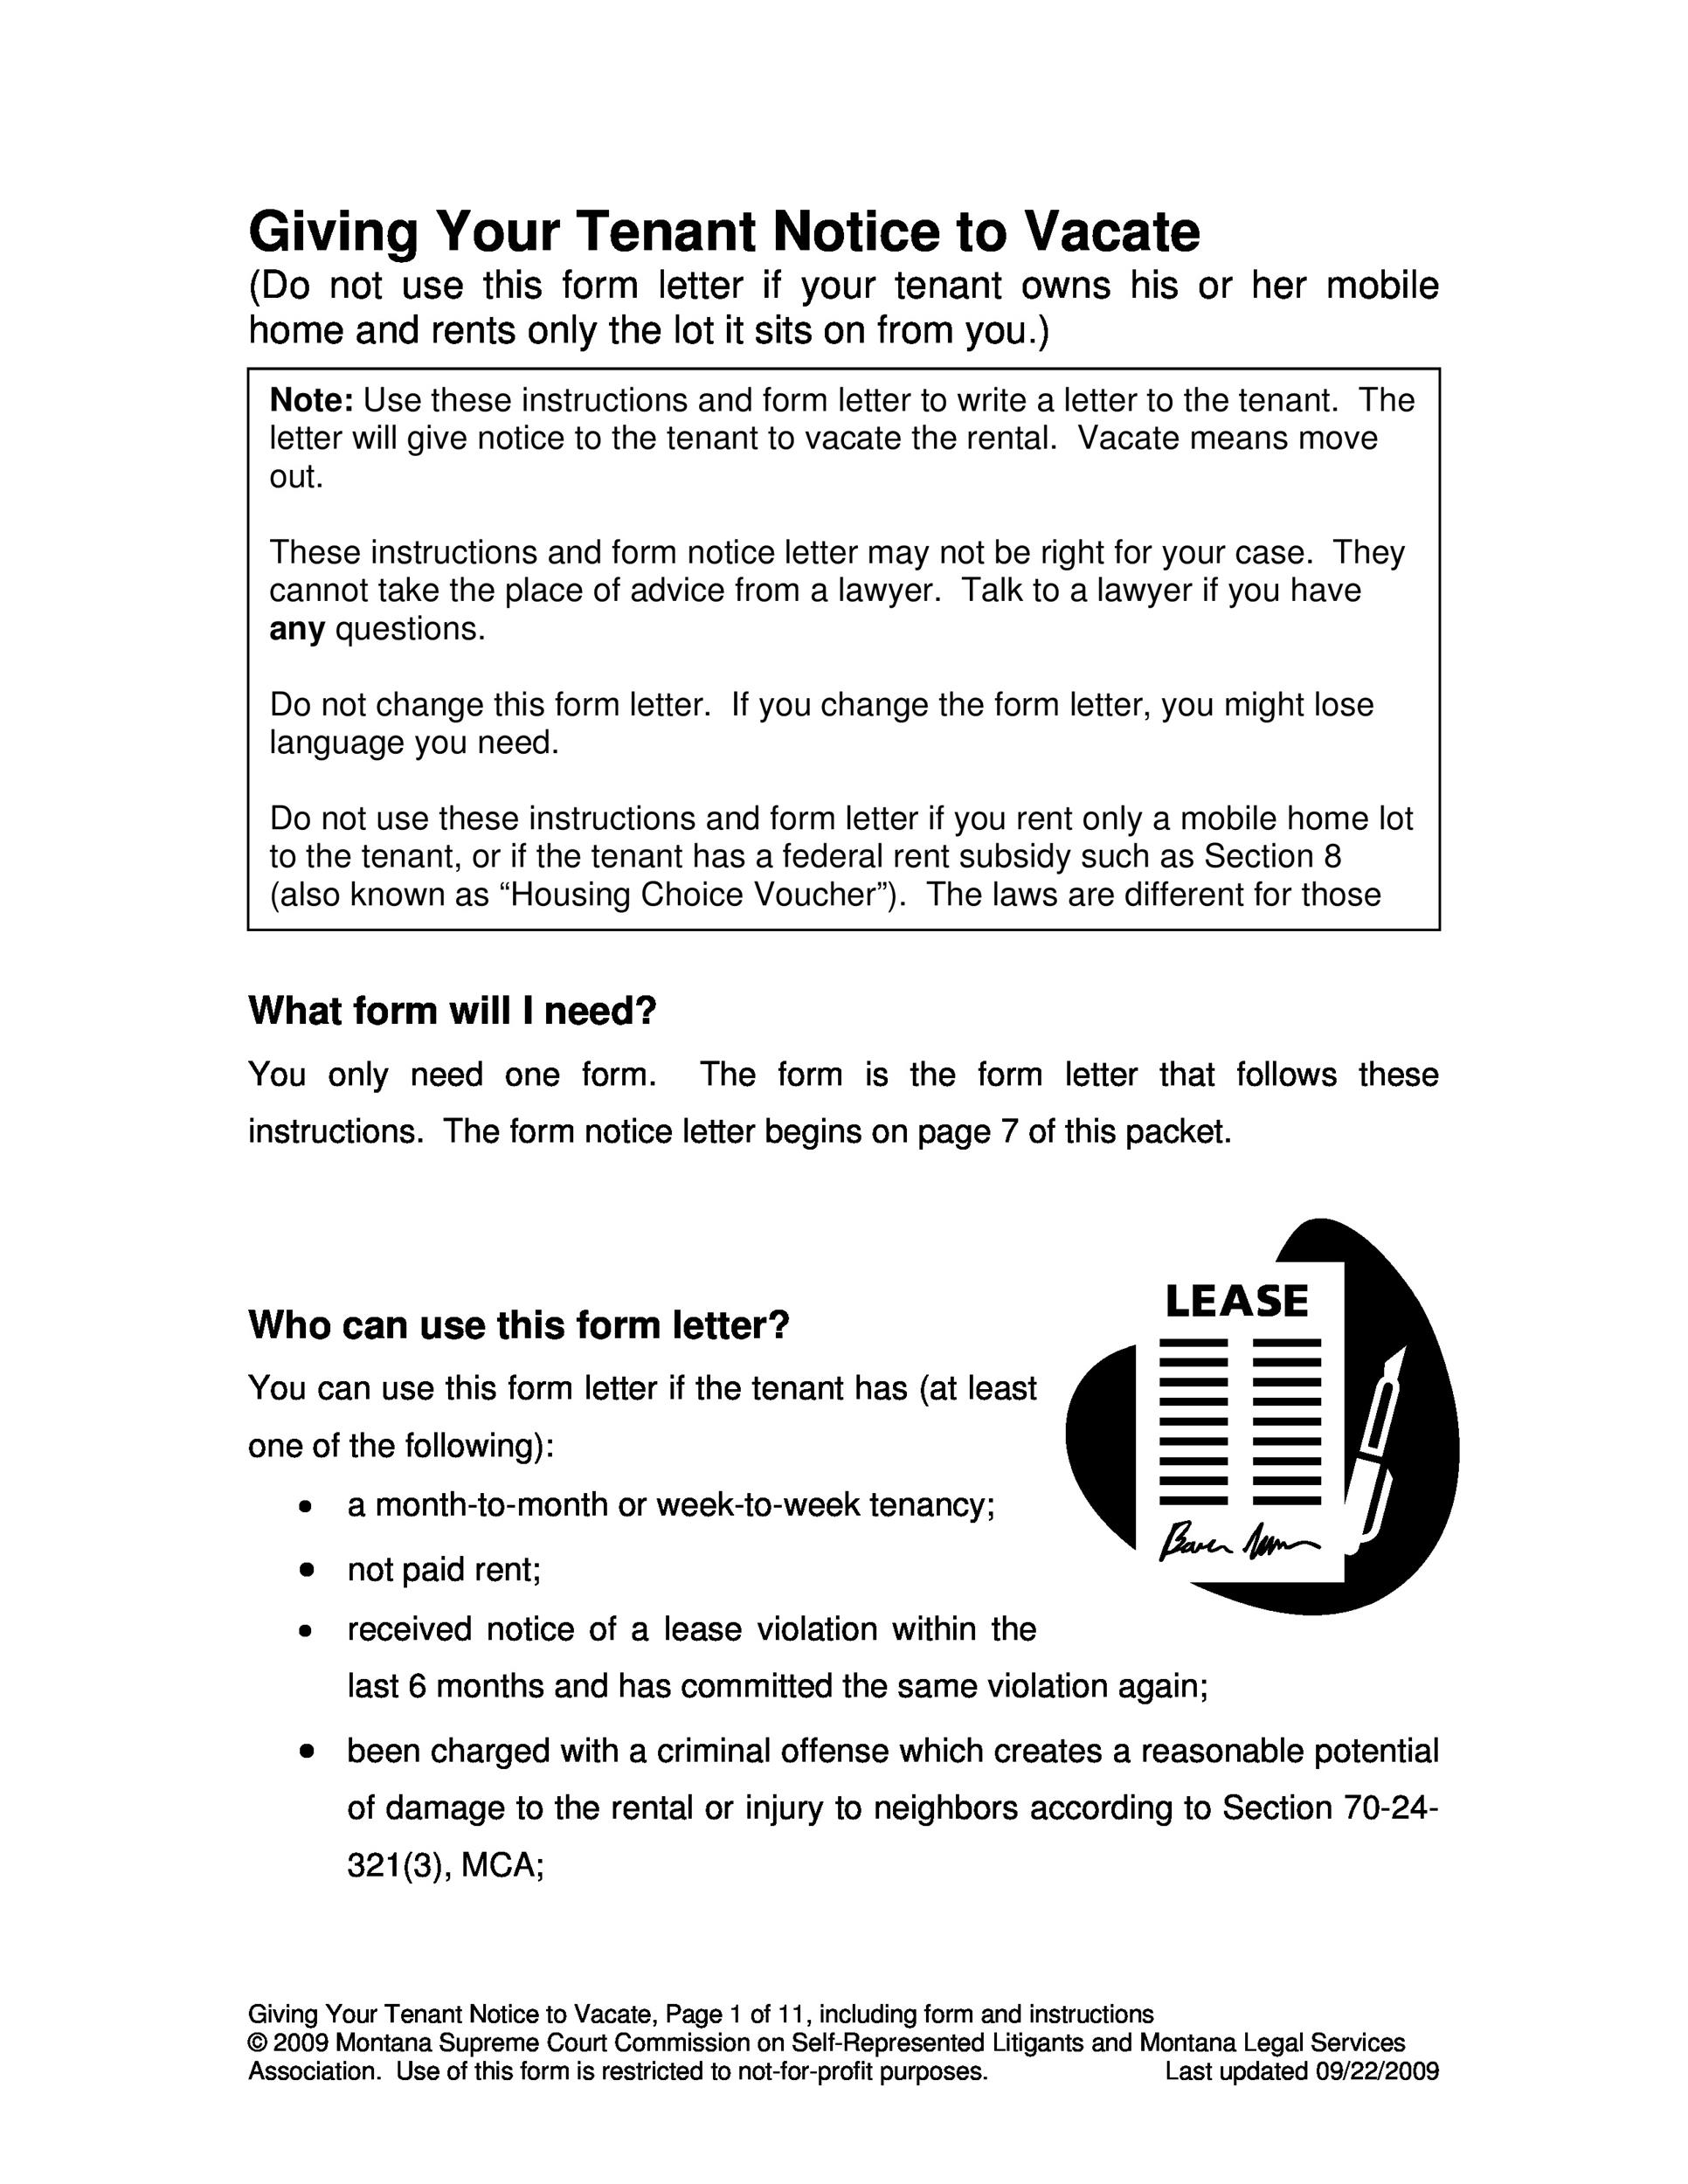 Free Giving Your Tenant Notice to Vacate